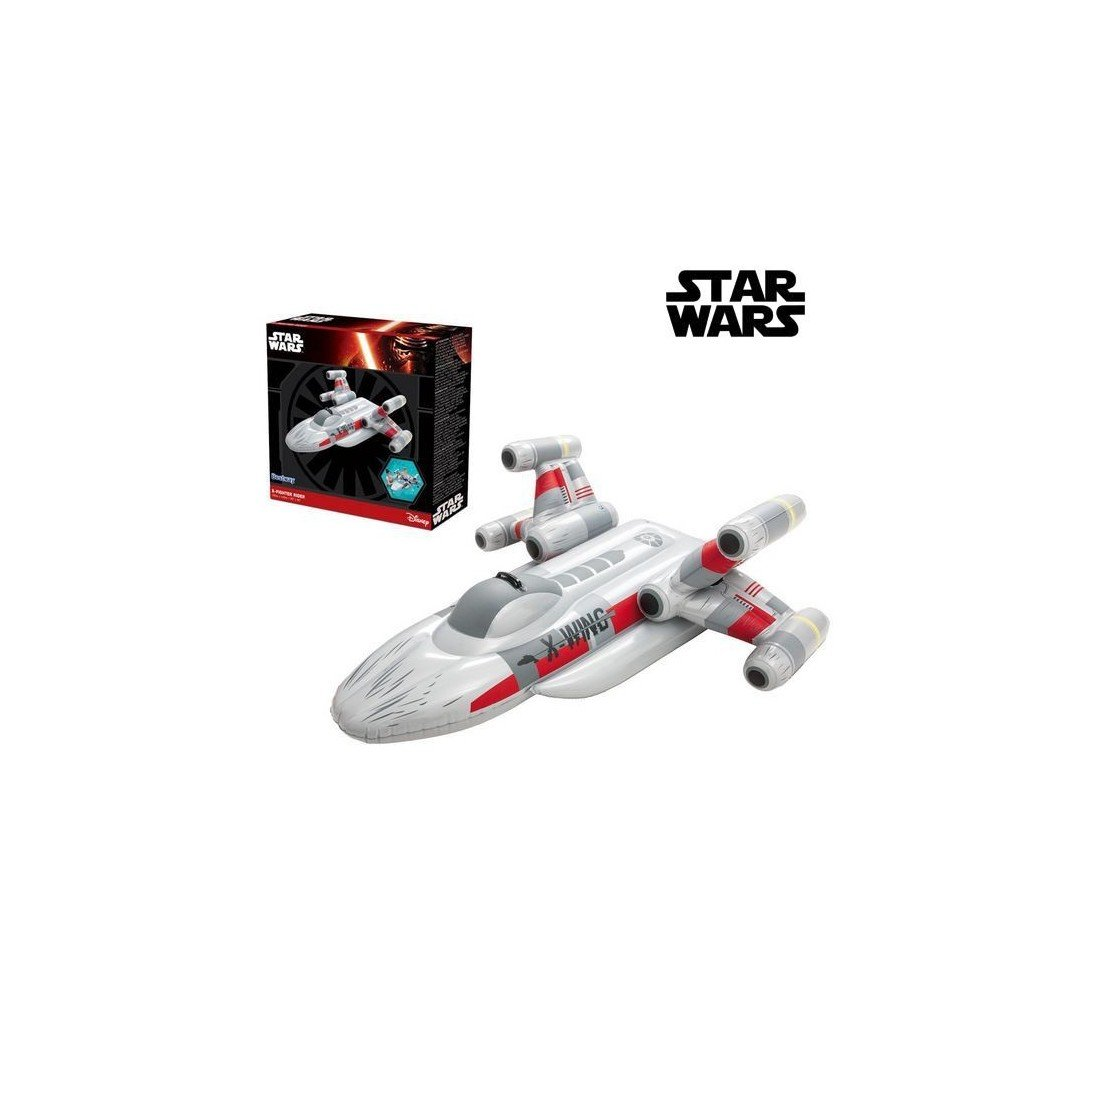 Figura Hinchable para Piscina Star Wars 3246 Avión: Amazon.es ...